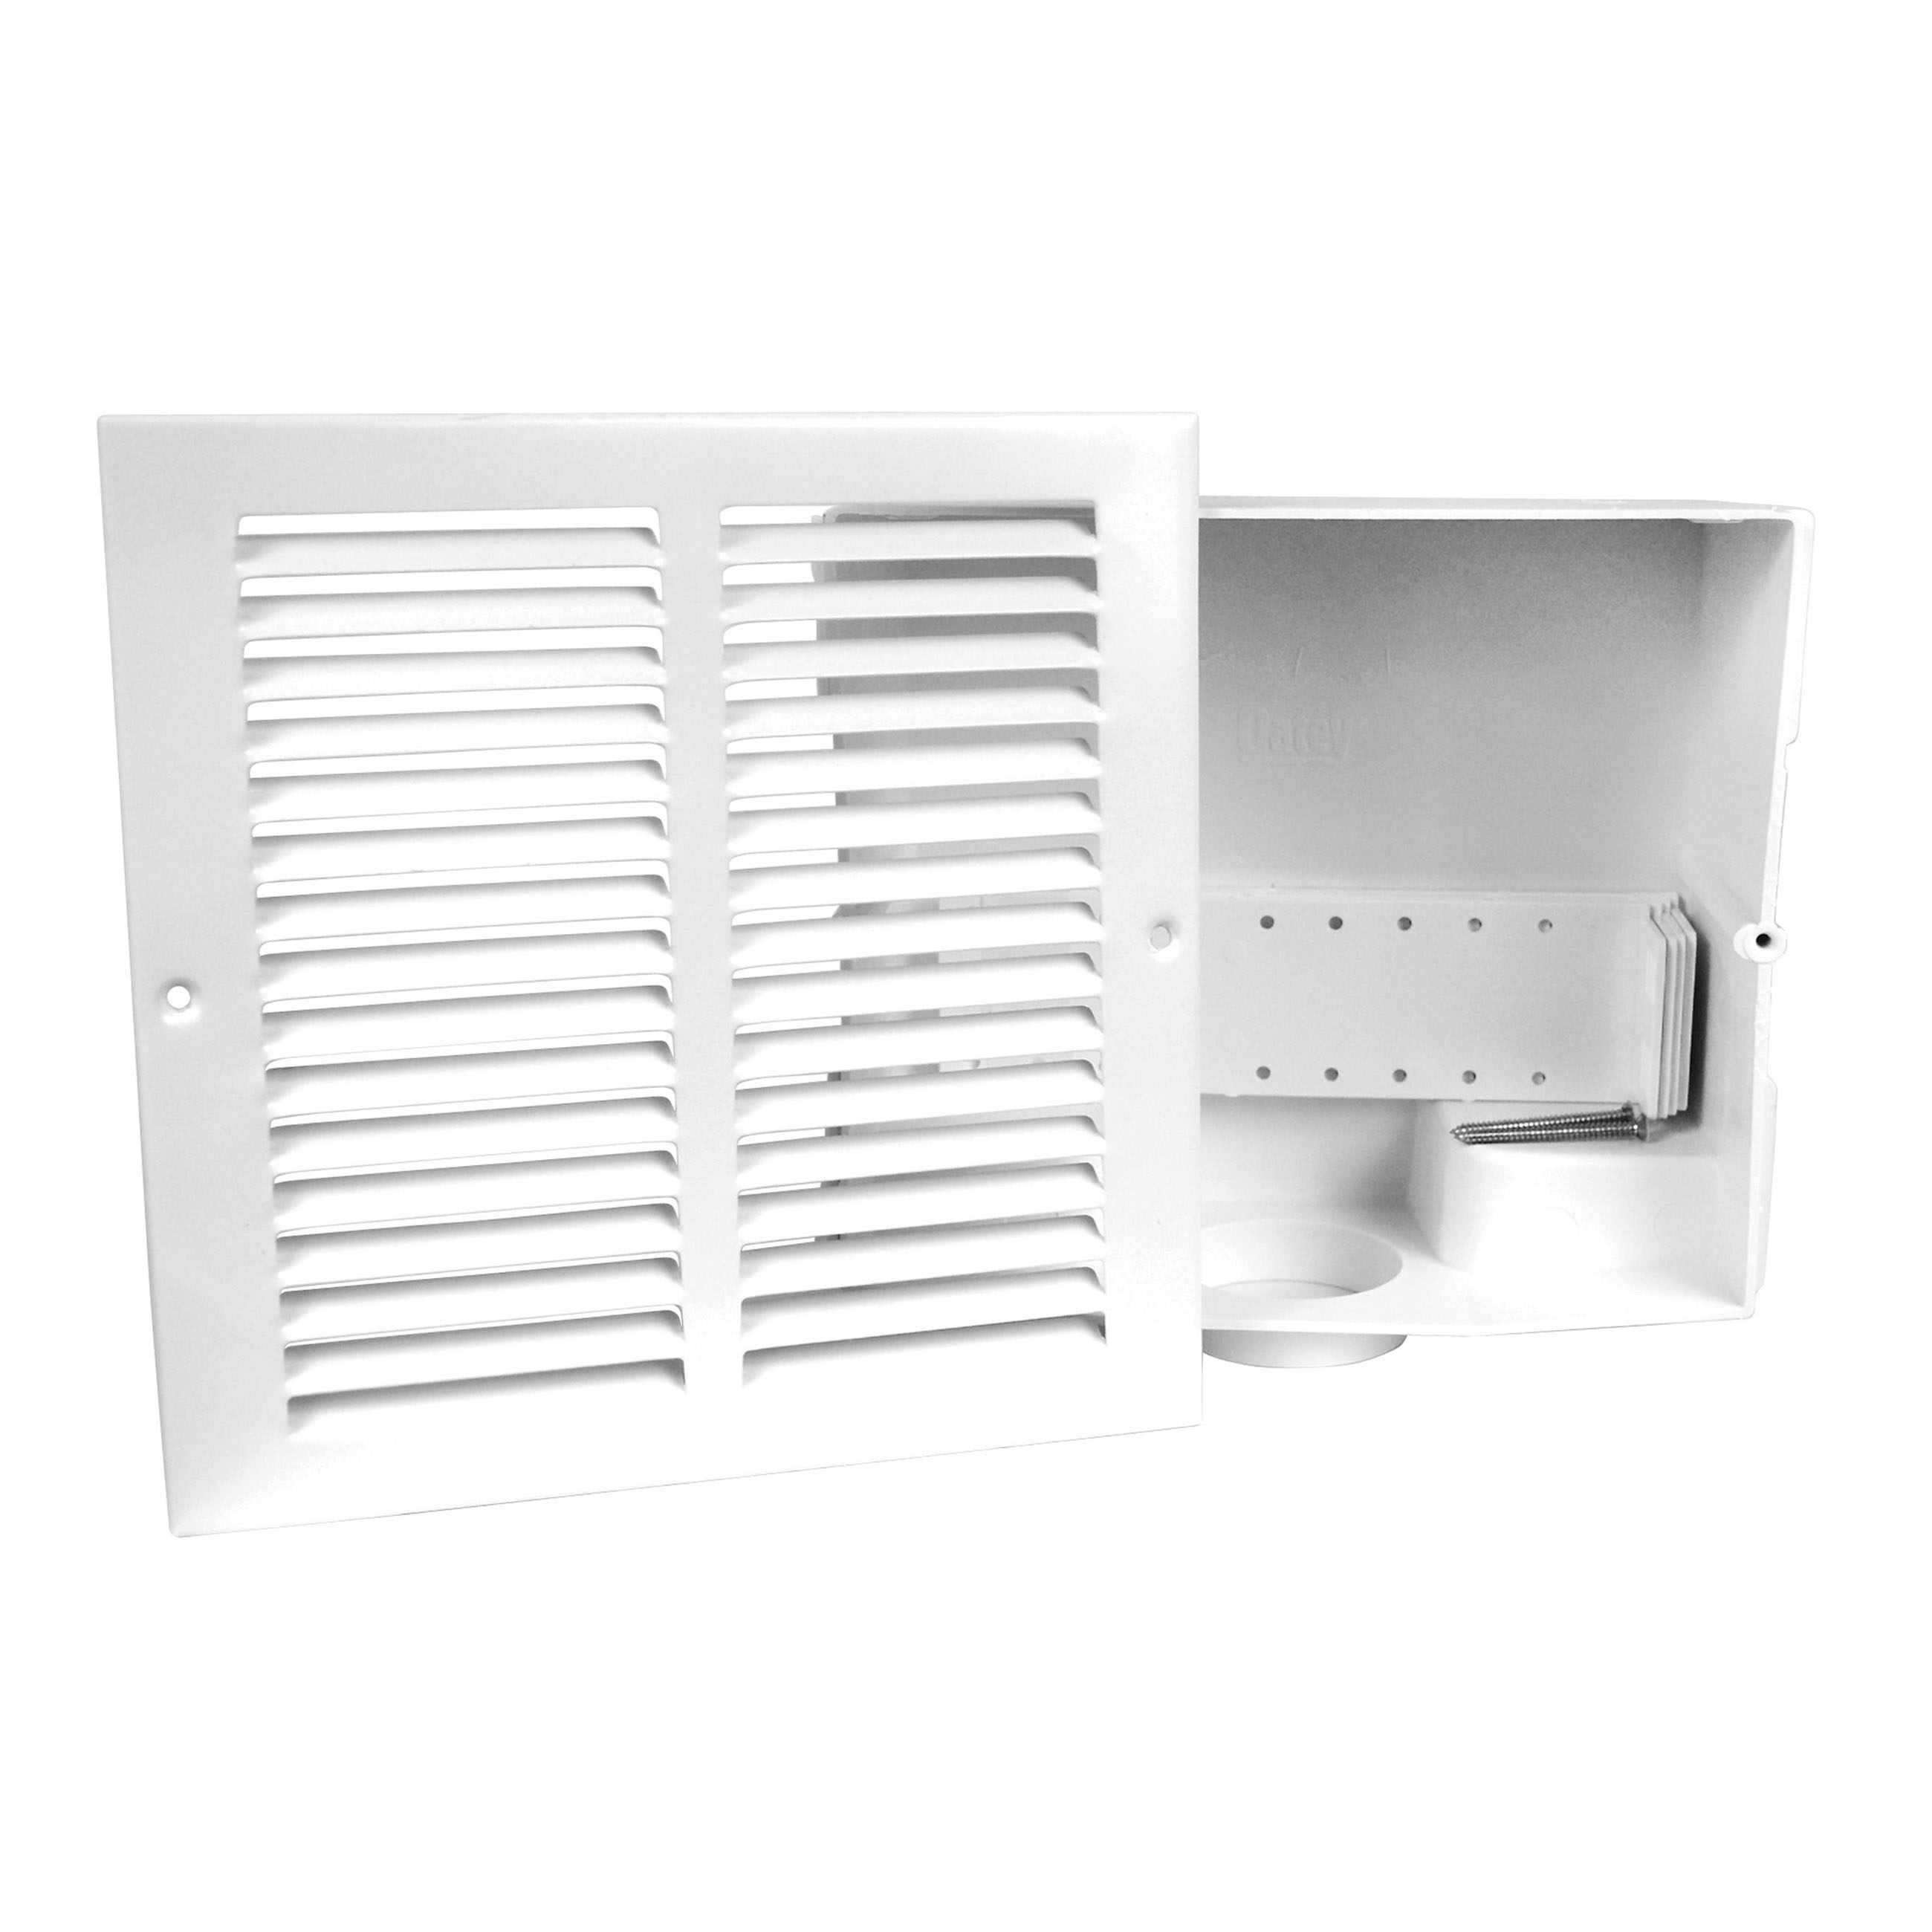 Oatey® SURE-VENT® 39010 High Impact Polystyrene Air Admittance Valve Wall Box